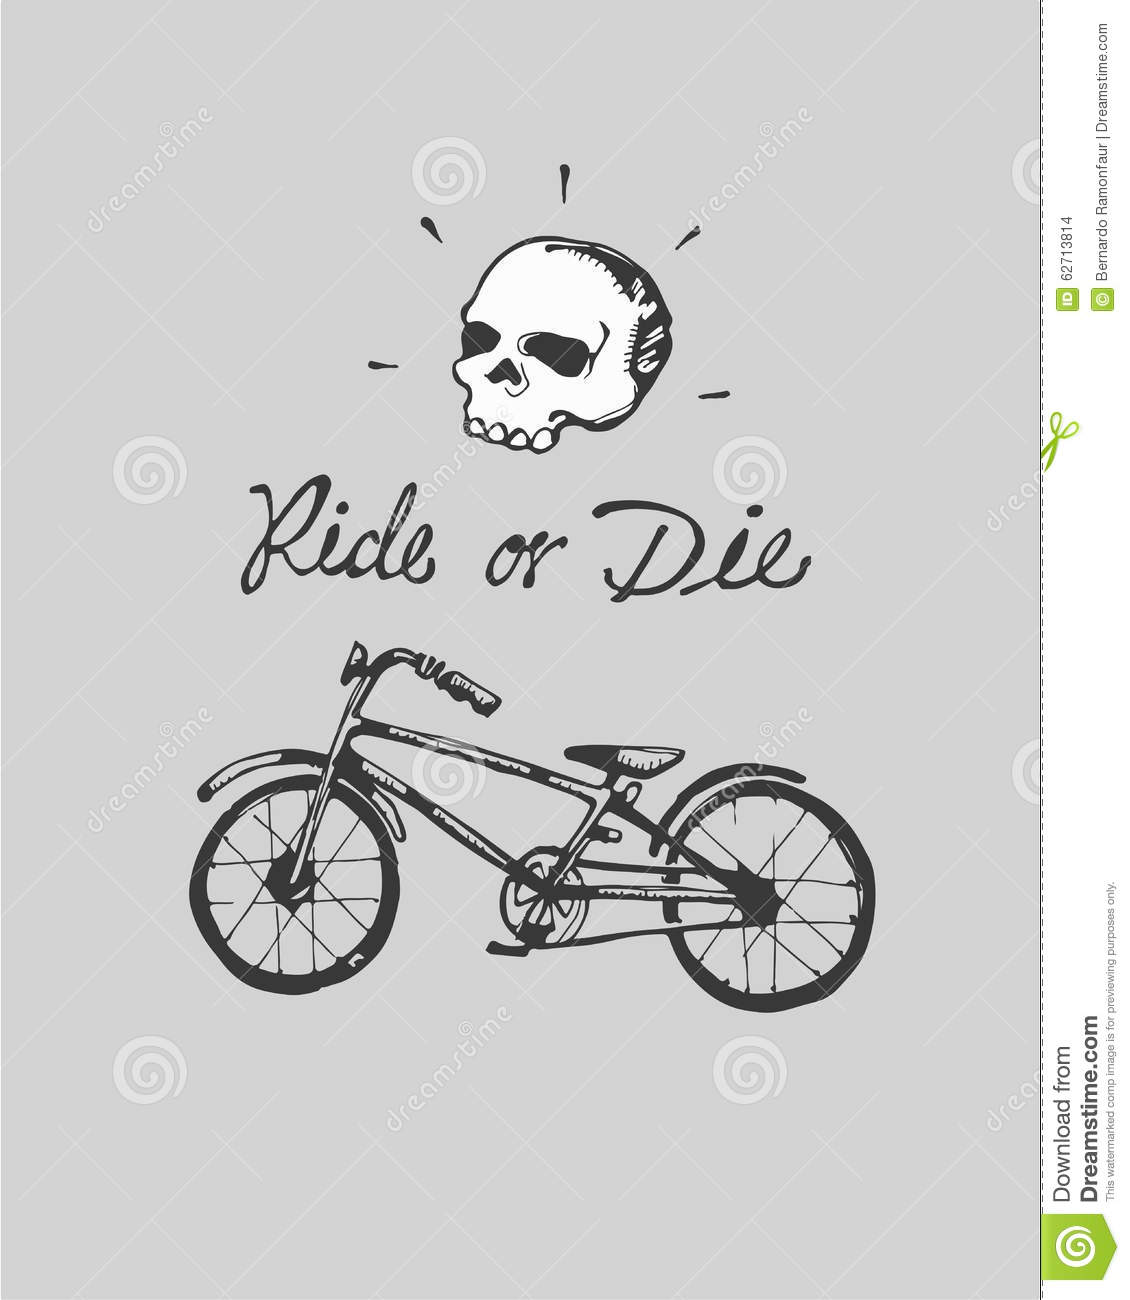 Ride or die stock vector image 62713814 for Ride or die tattoo designs